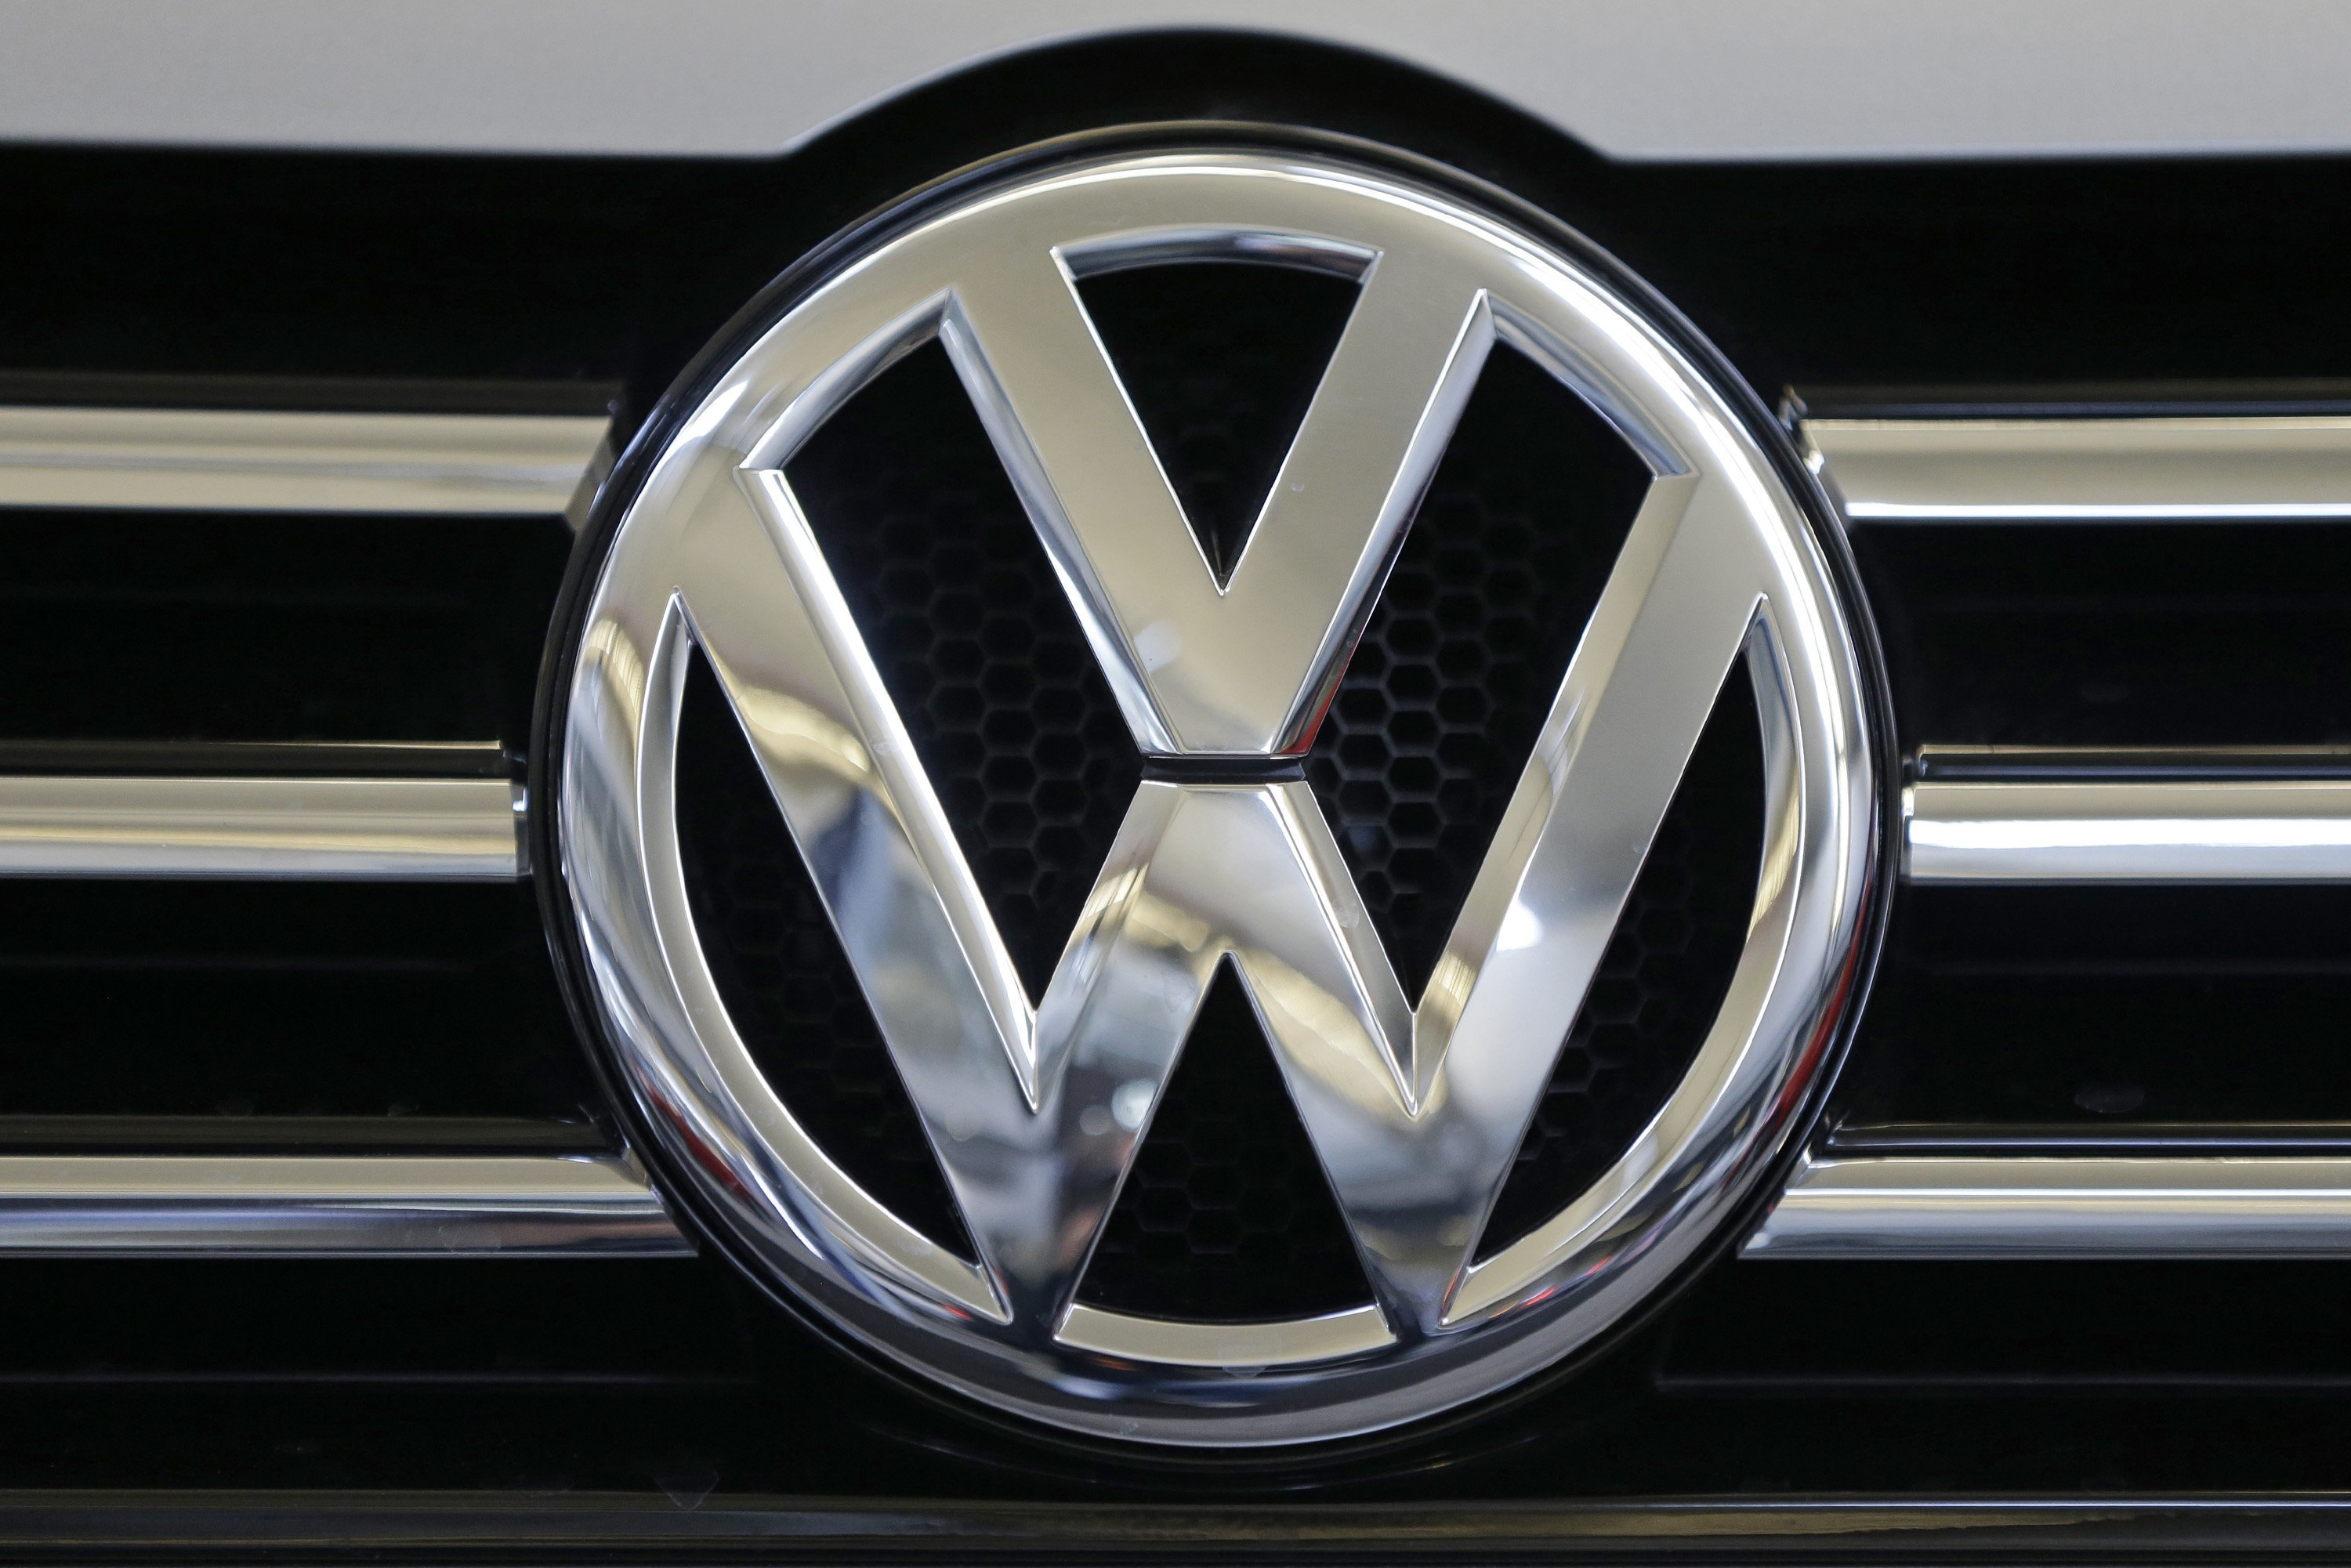 Volkswagen Likely to be Largest Carmaker after 10.8 million Deliveries in 2018